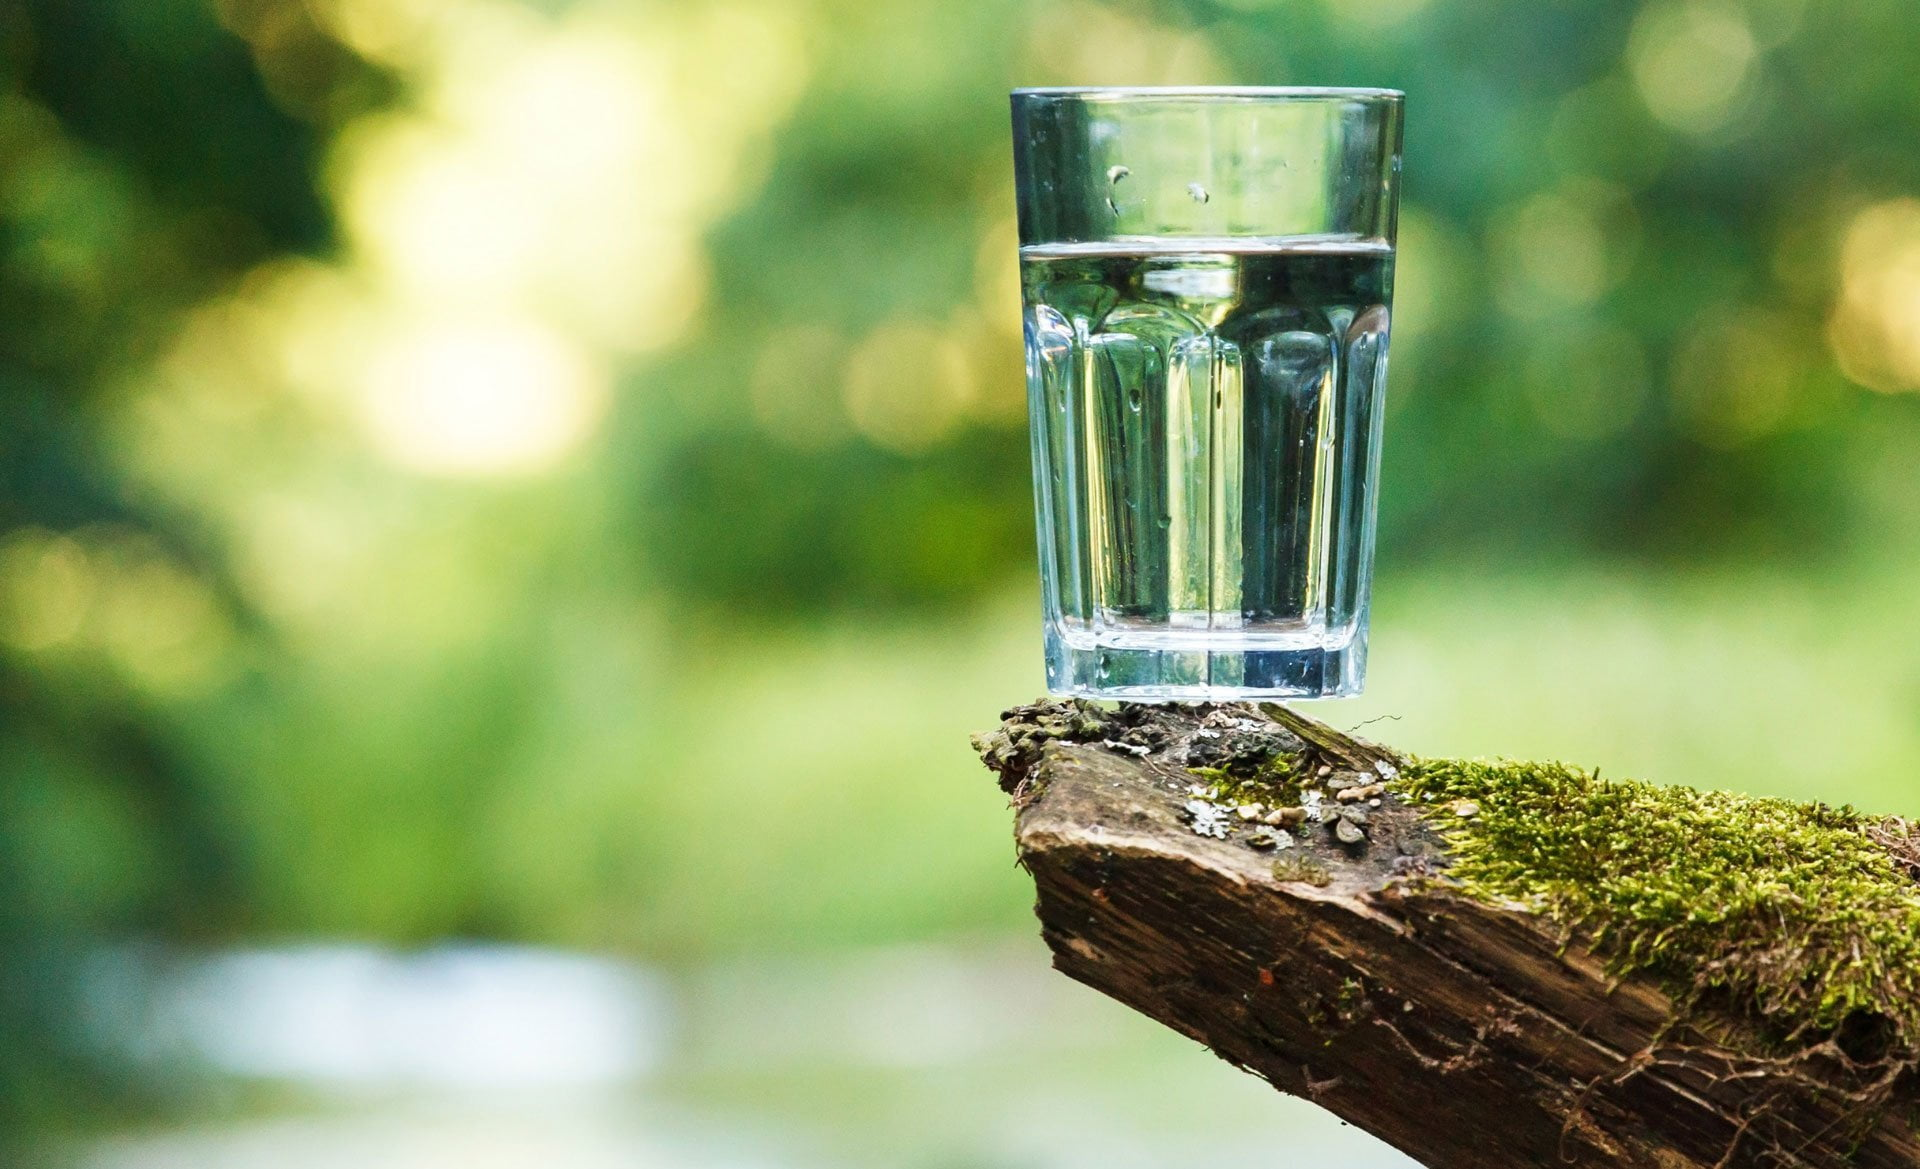 Higher water quality at lower cost